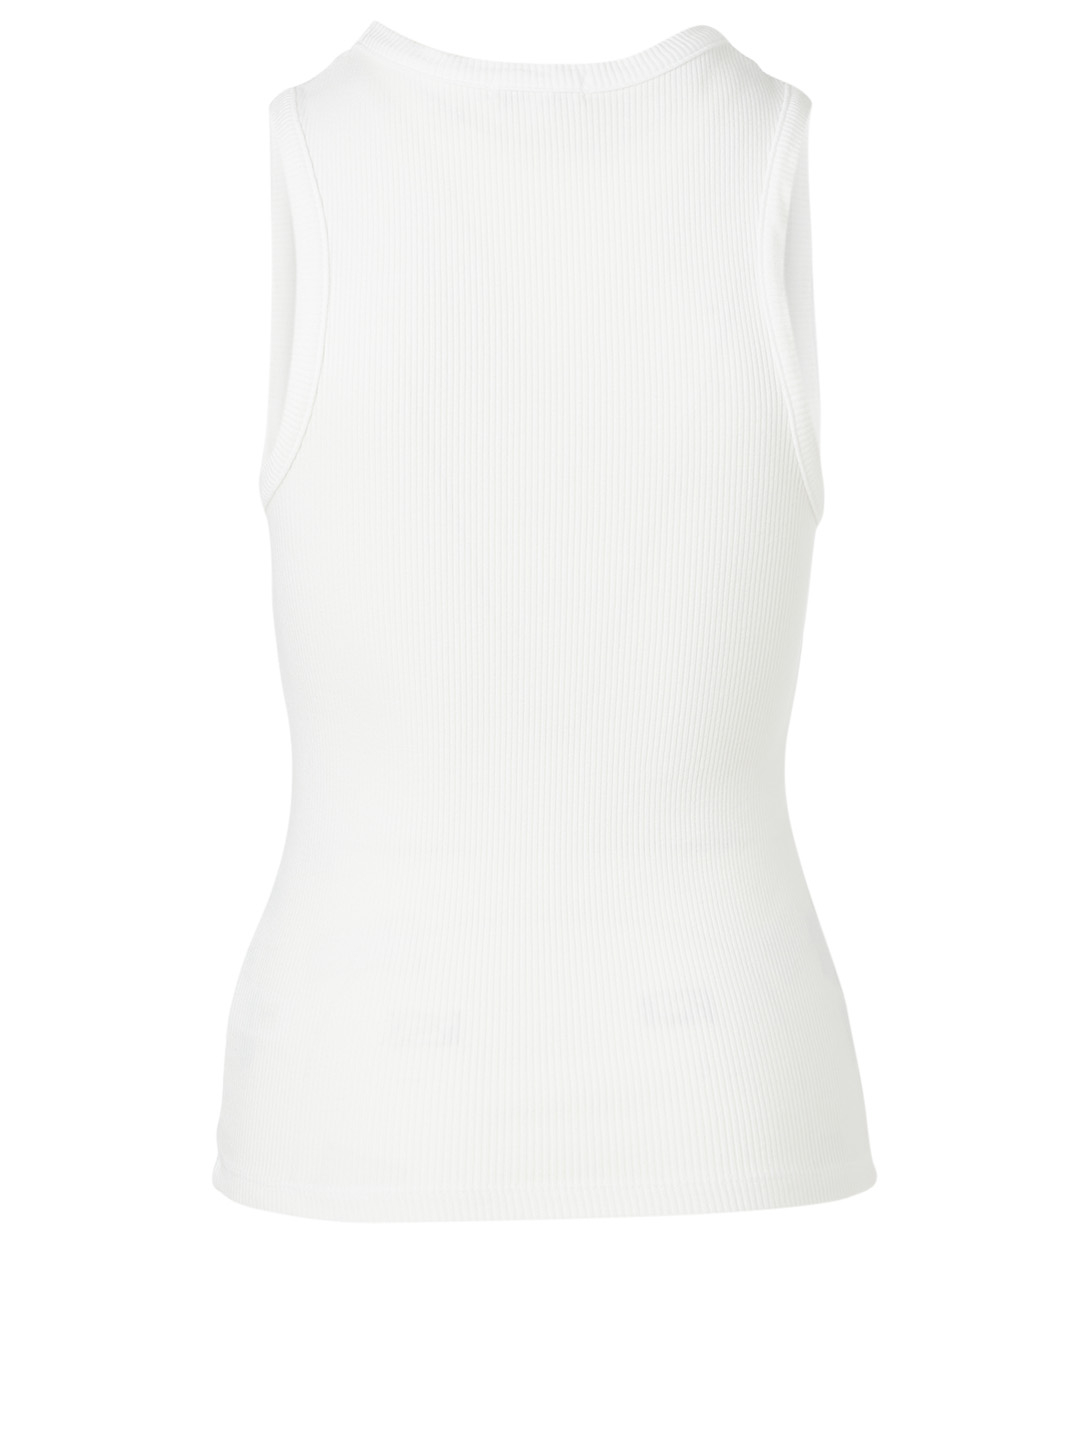 AGOLDE Poppy Scoop Tank Top Women's White